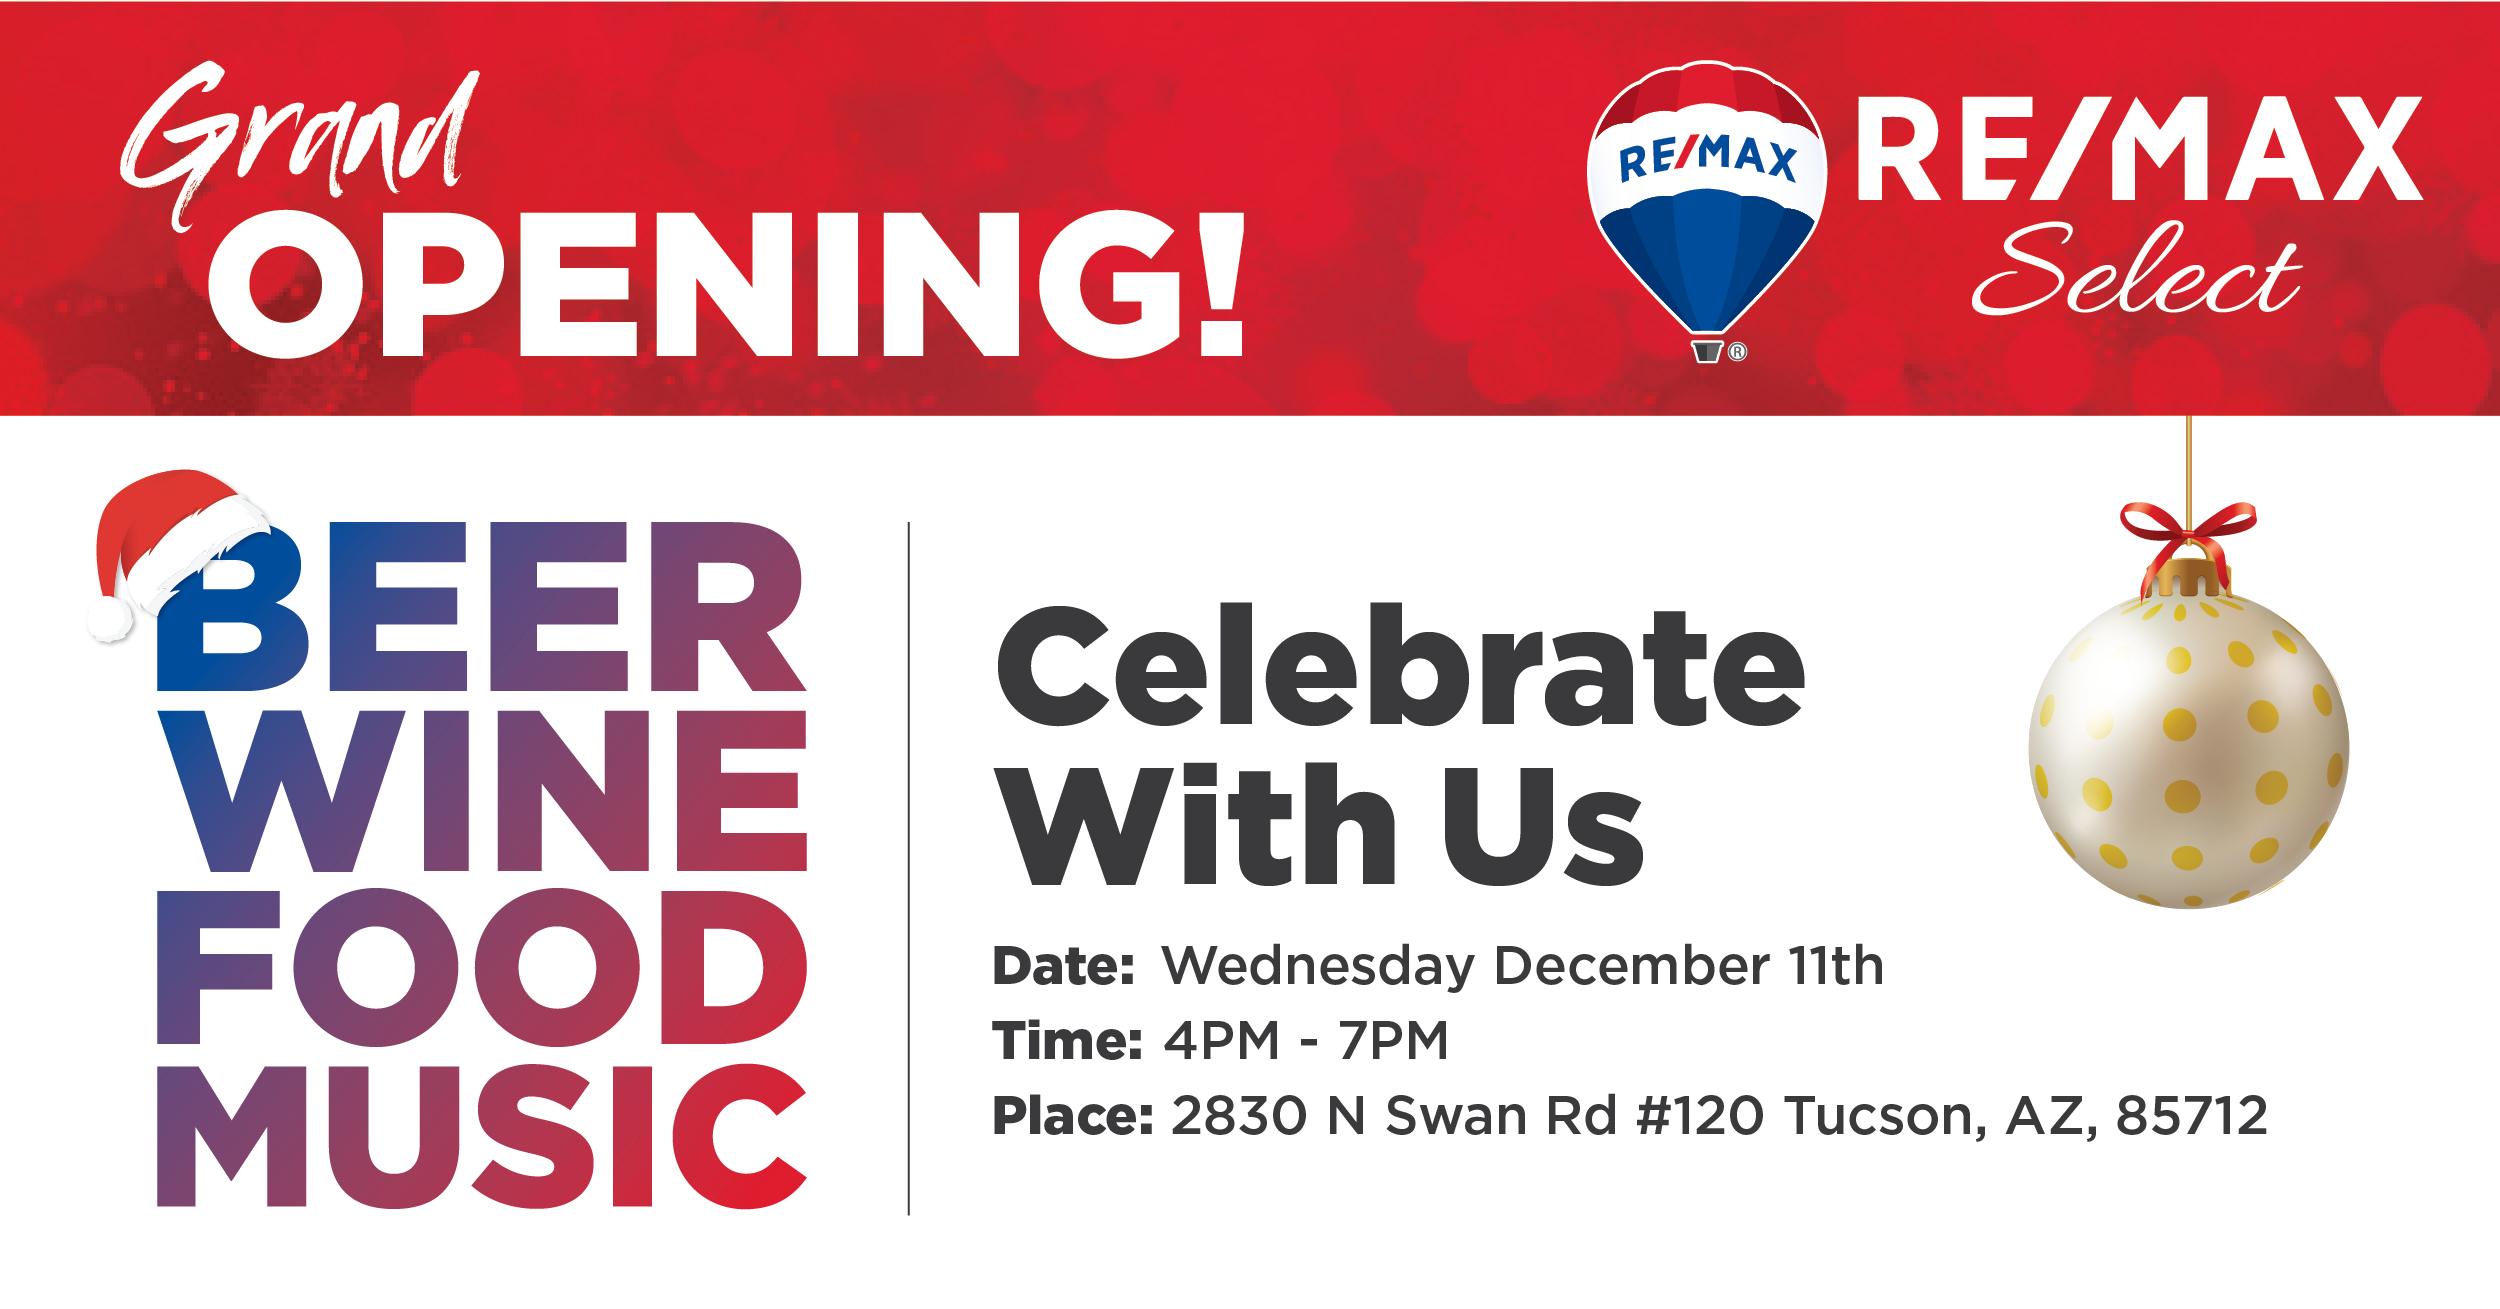 GRAND OPENING PARTY DEC 11, 2019